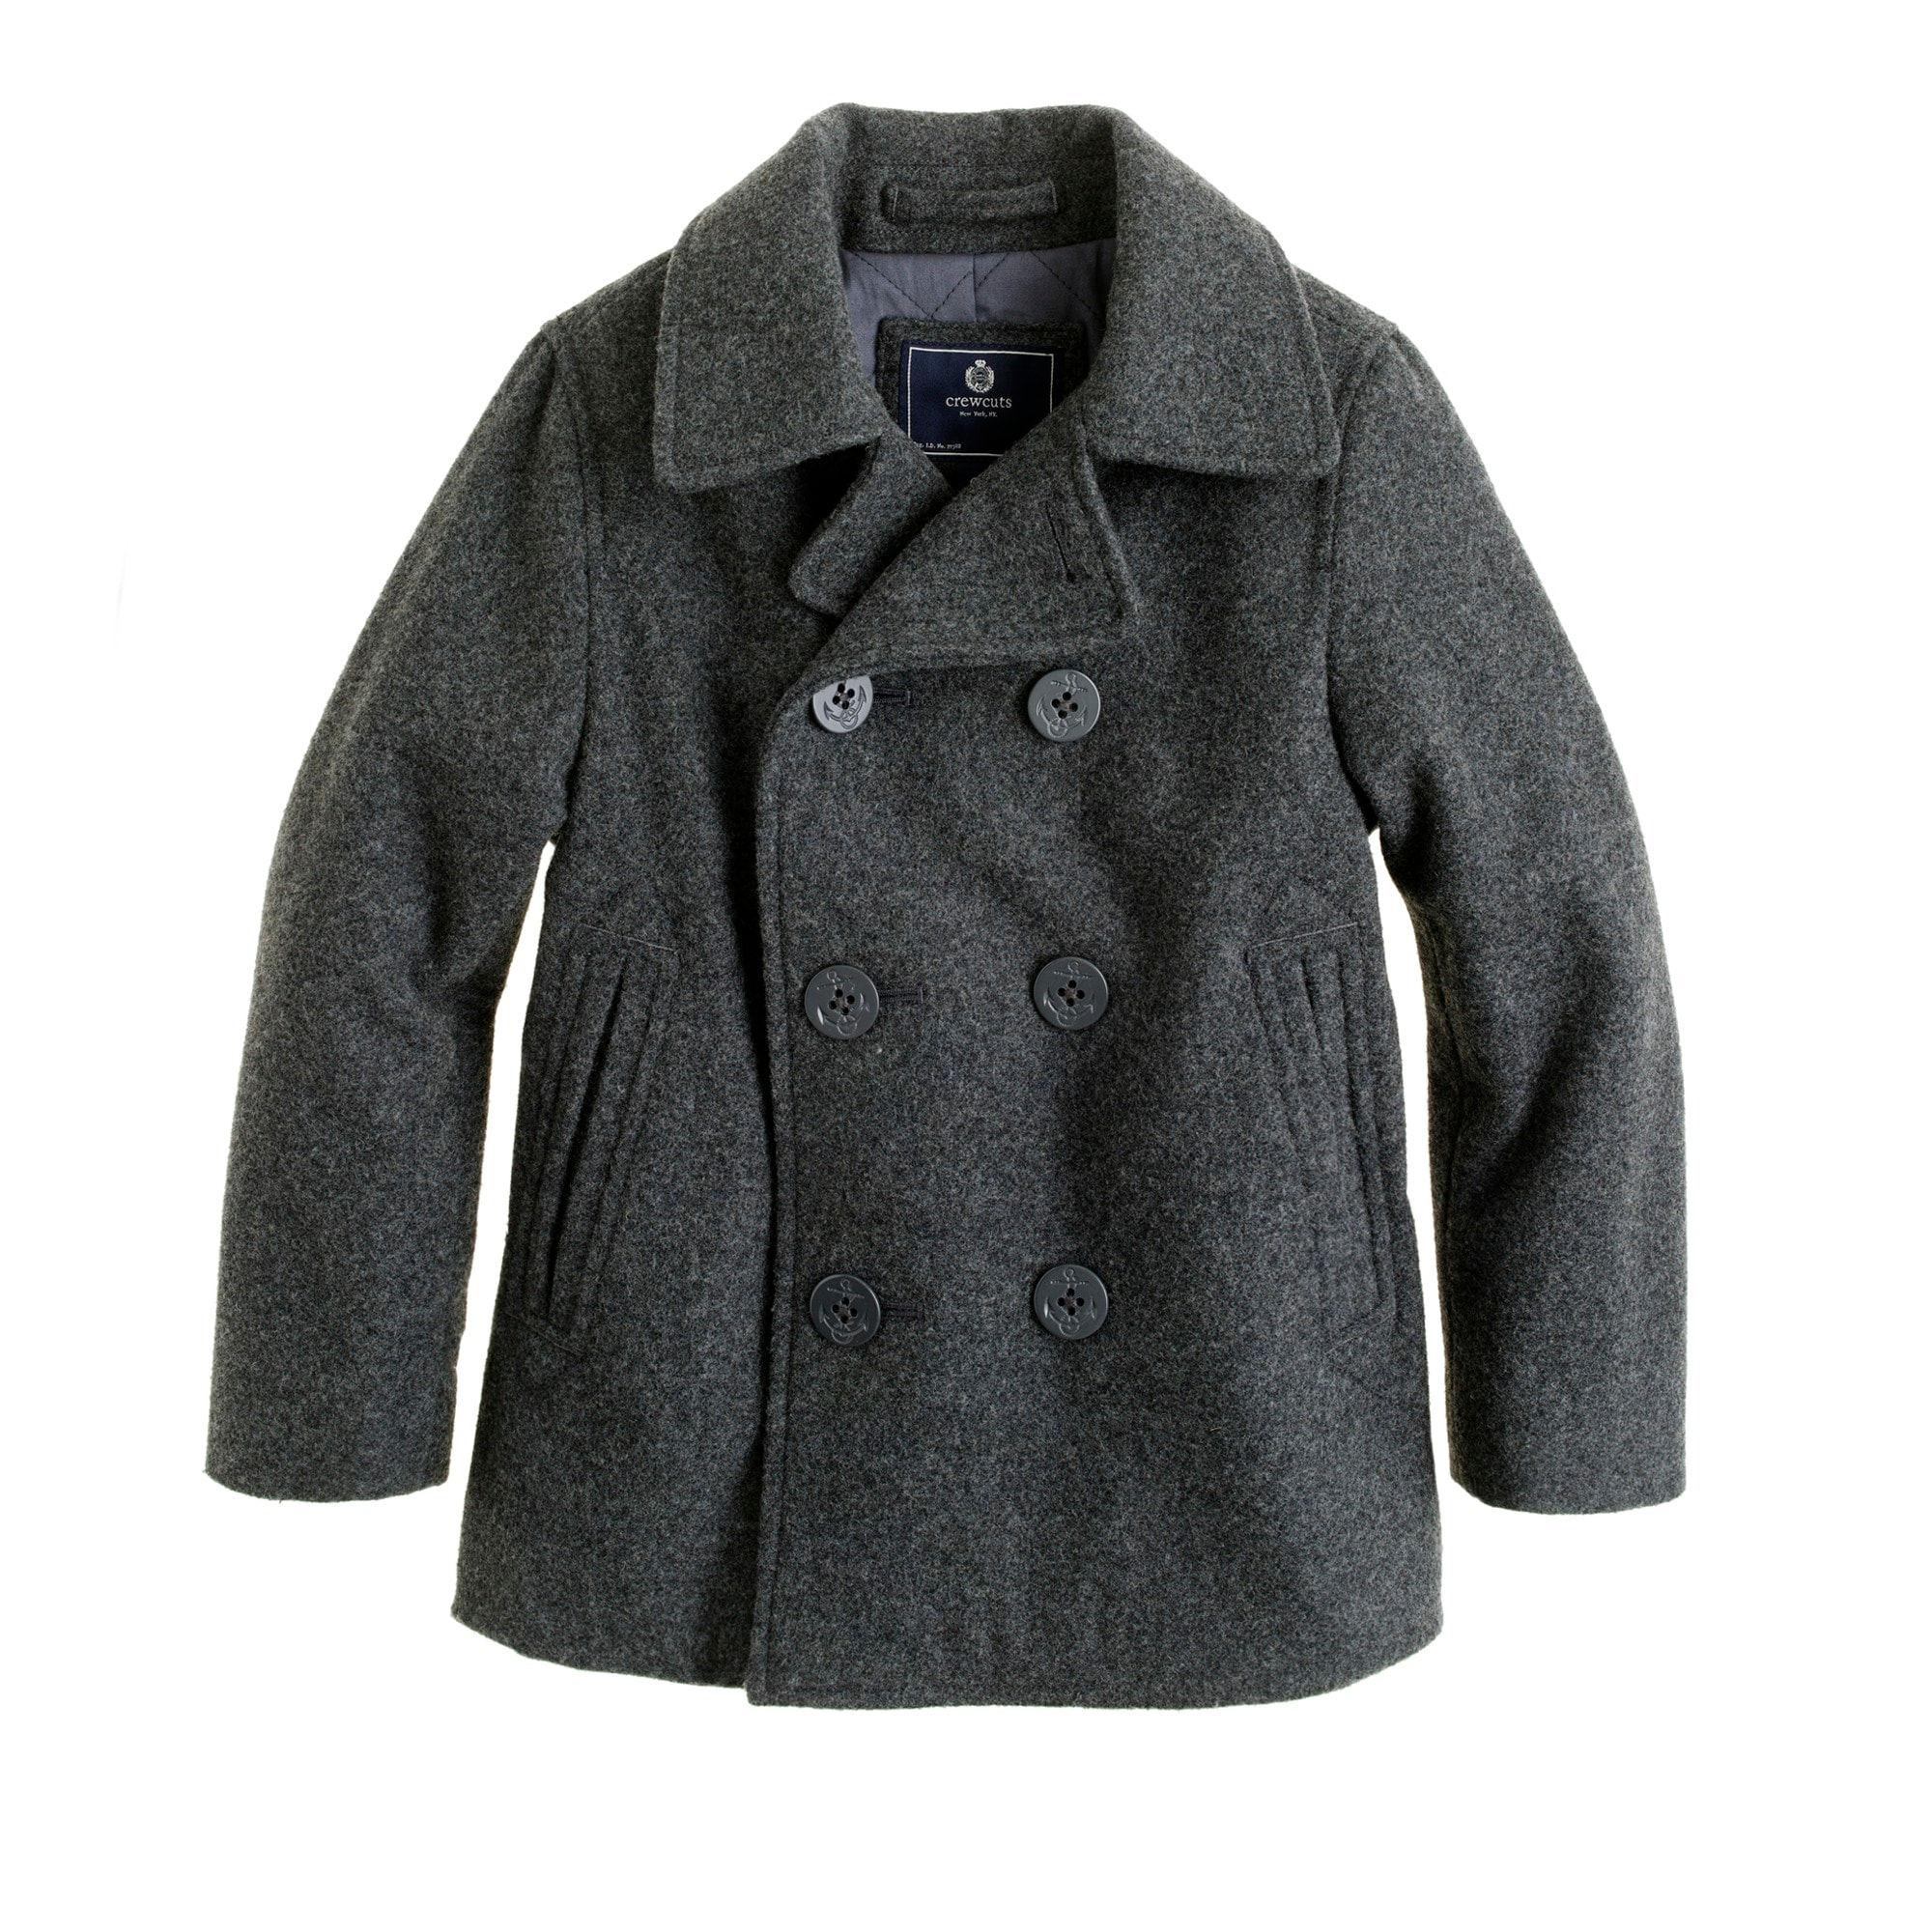 Boys' city peacoat with Thinsulate®